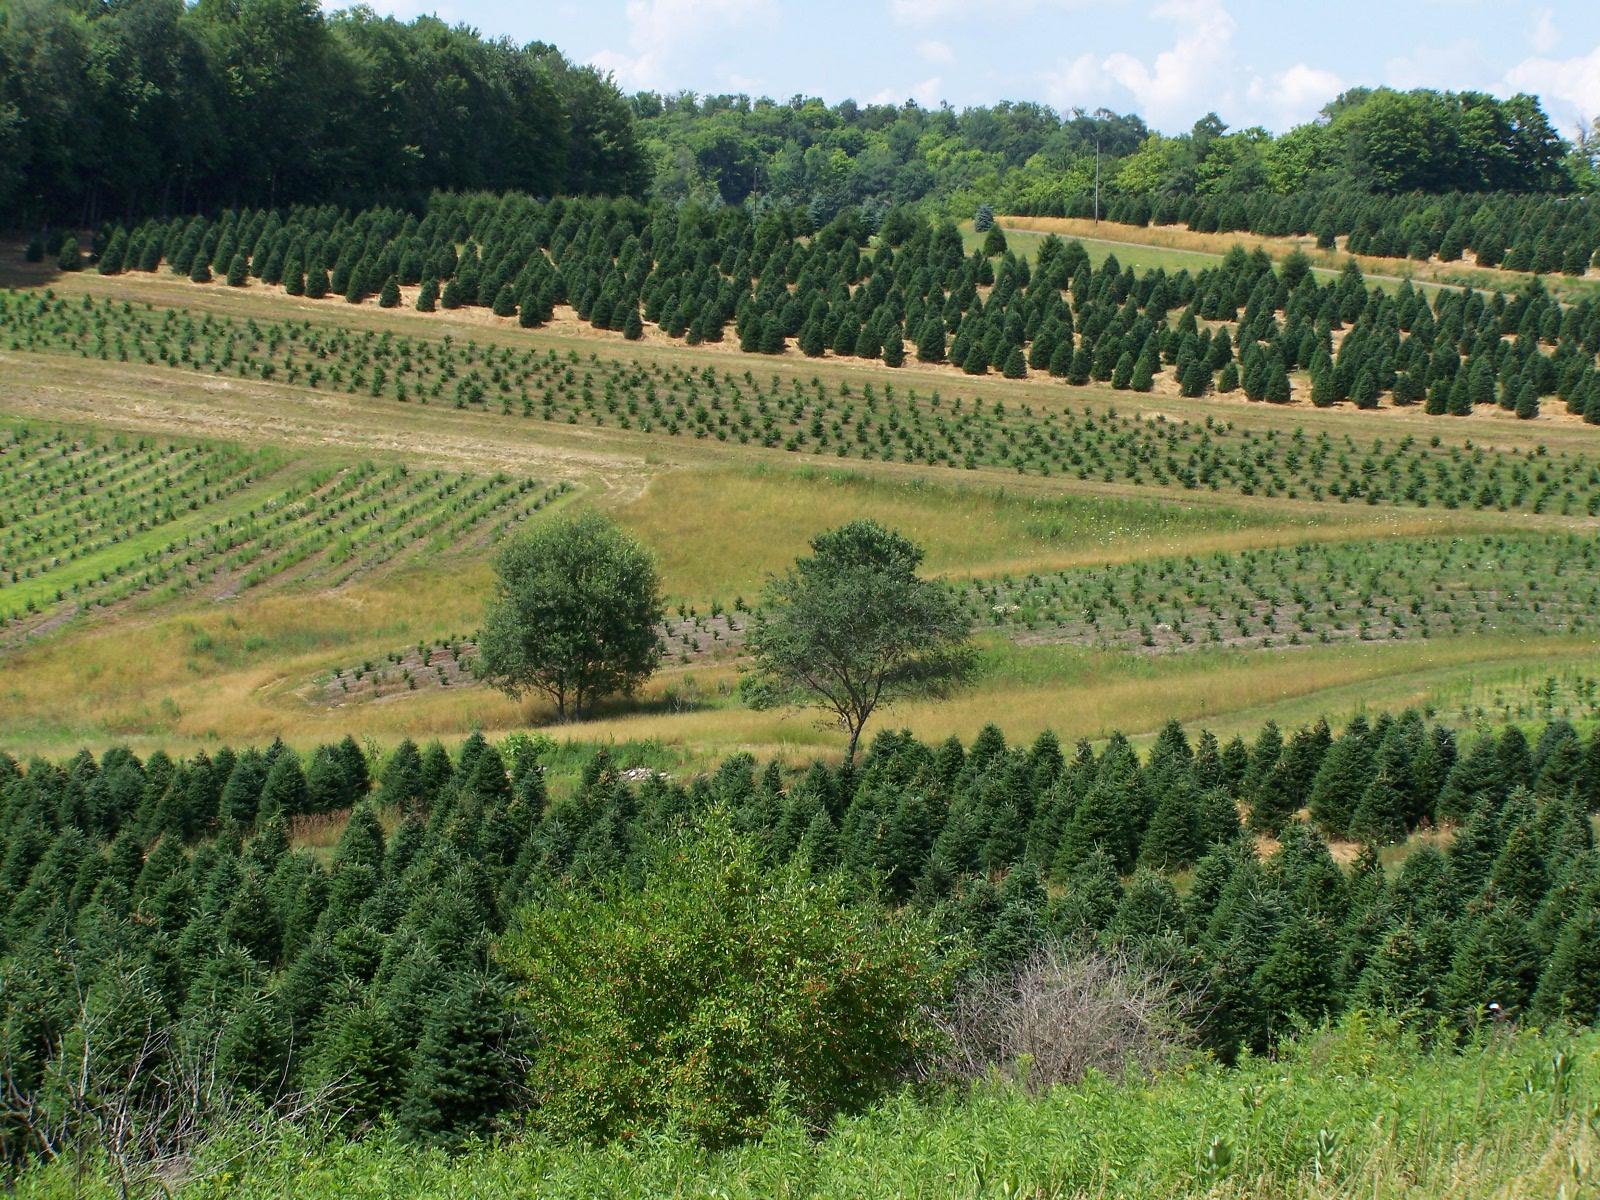 Forest View Evergreen Tree Farms - About Us